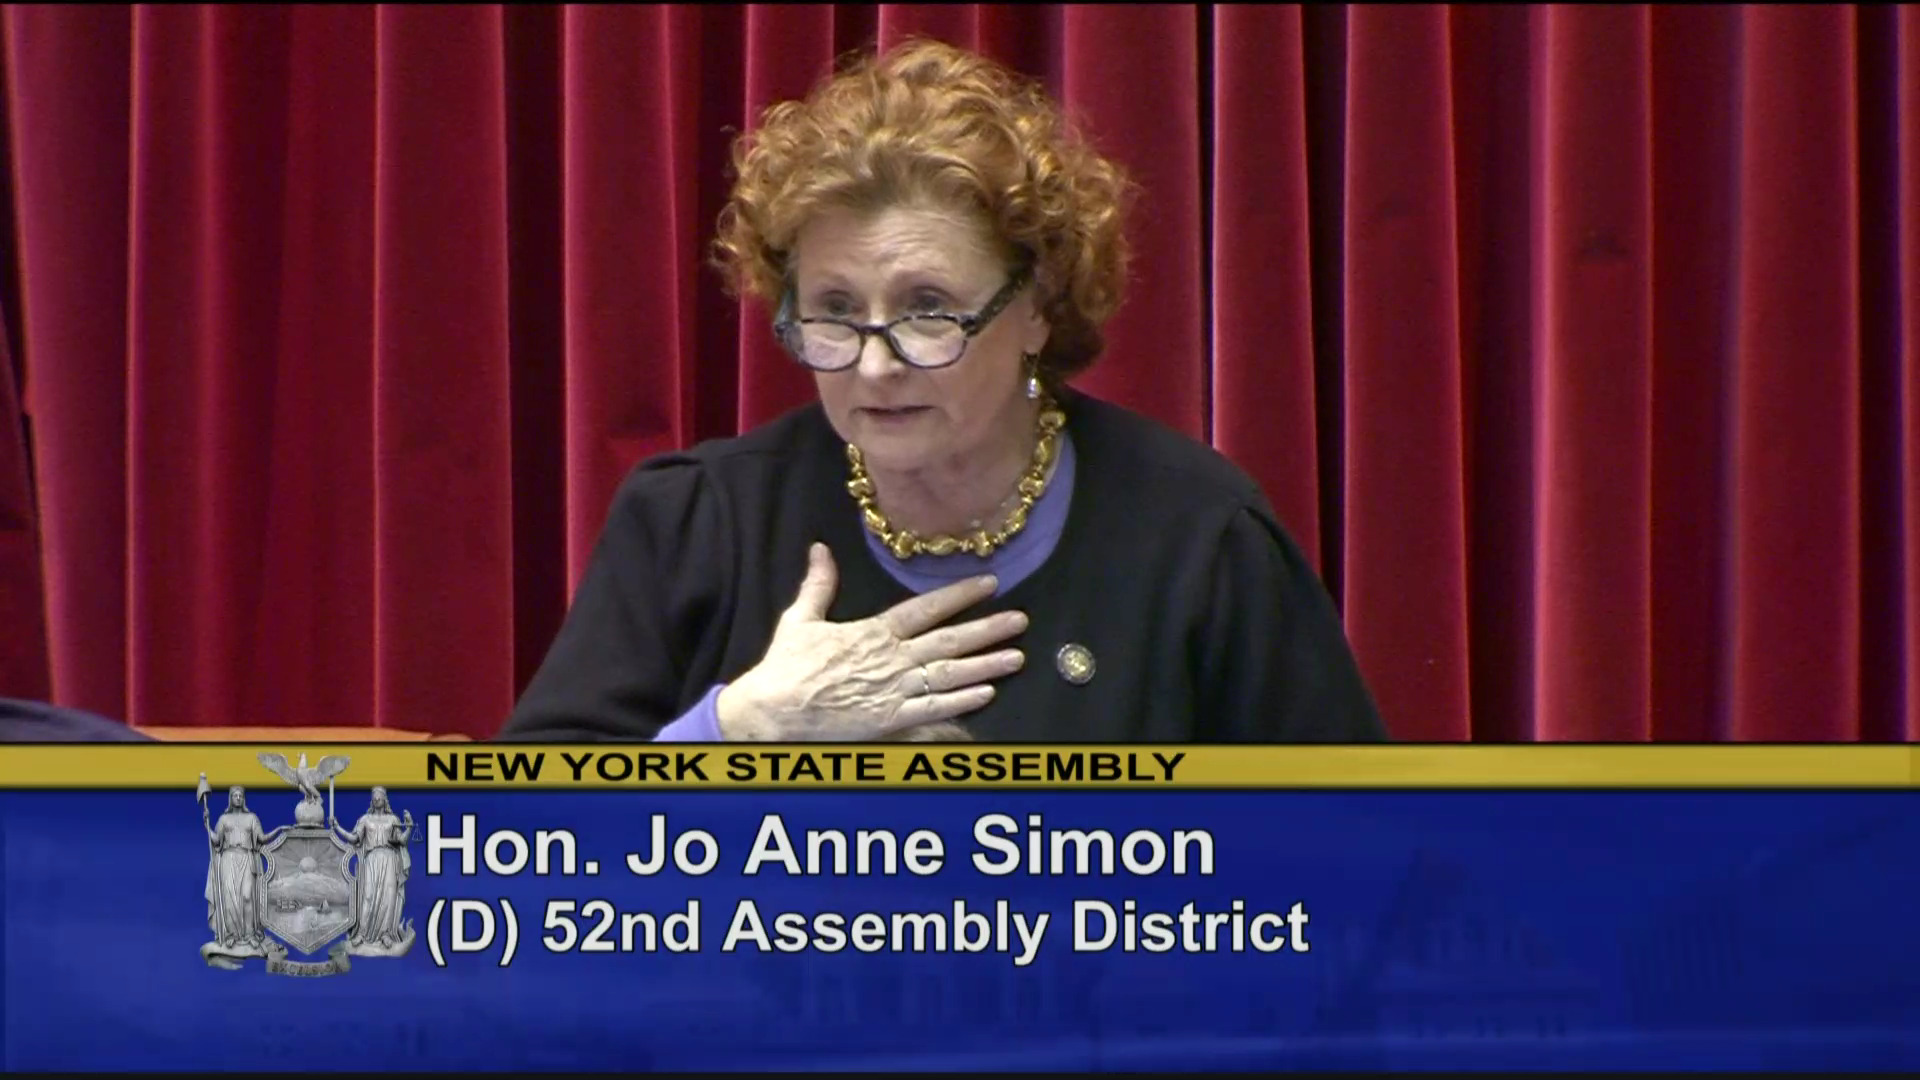 Assemblymember Jo Anne Simon Stands Up for LGBTQ Community